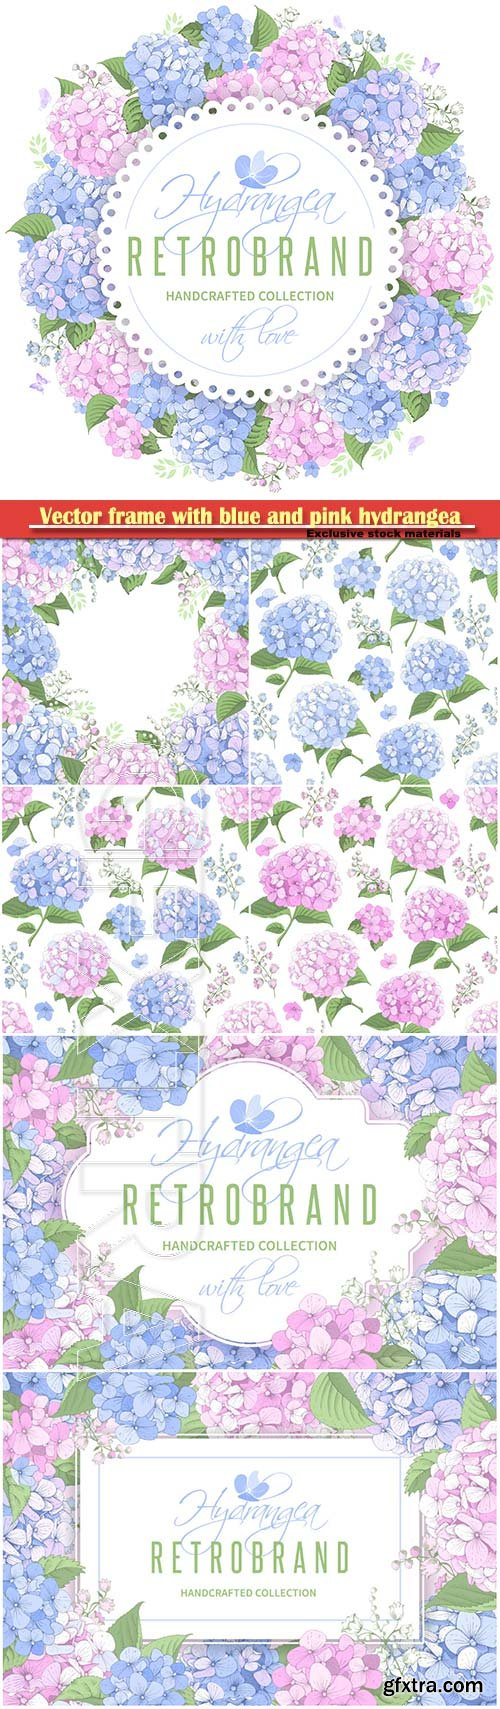 Vector frame with blue and pink hydrangea flowers